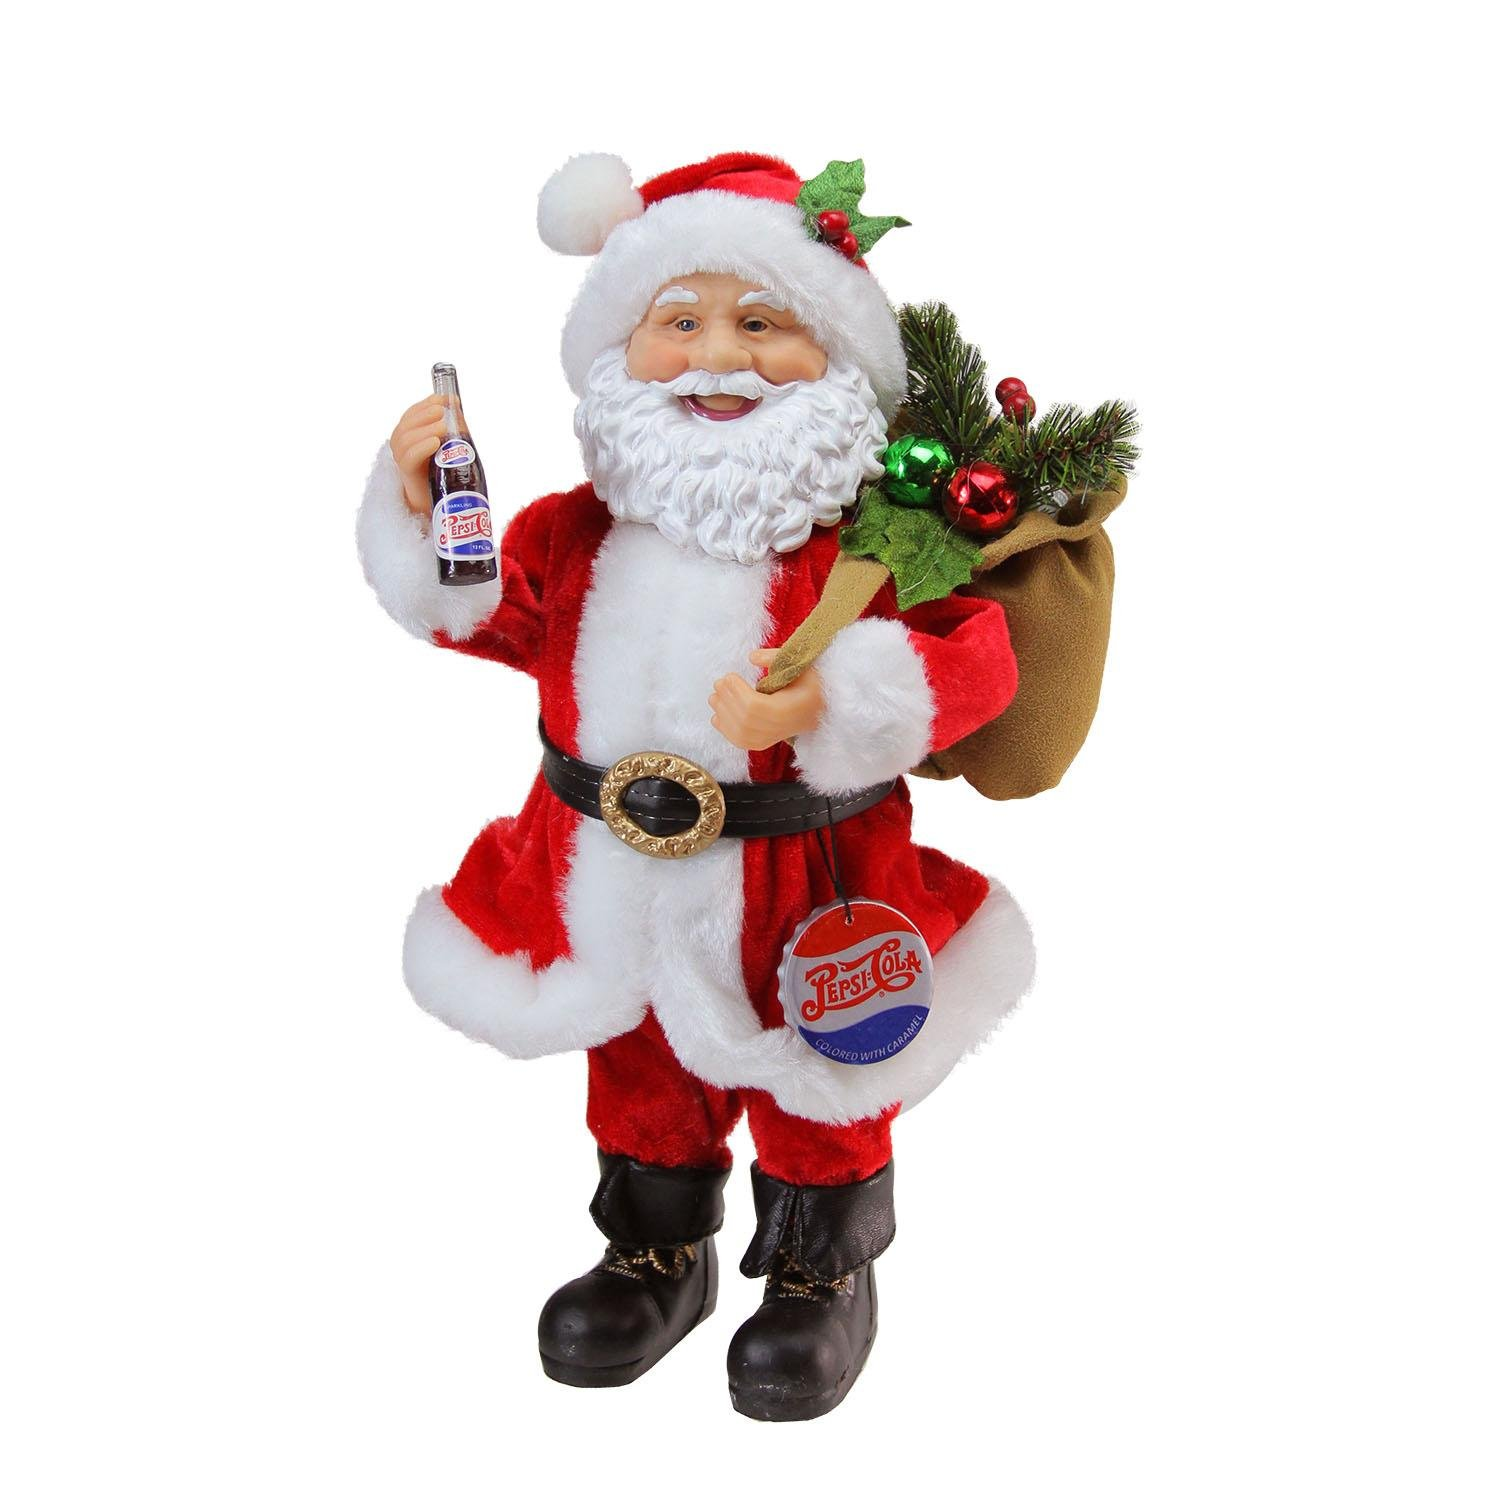 Northlight Santa Claus with Gift Sack Holding Pepsi Cola Bottle and Cap Christmas Figure, 12'', Red